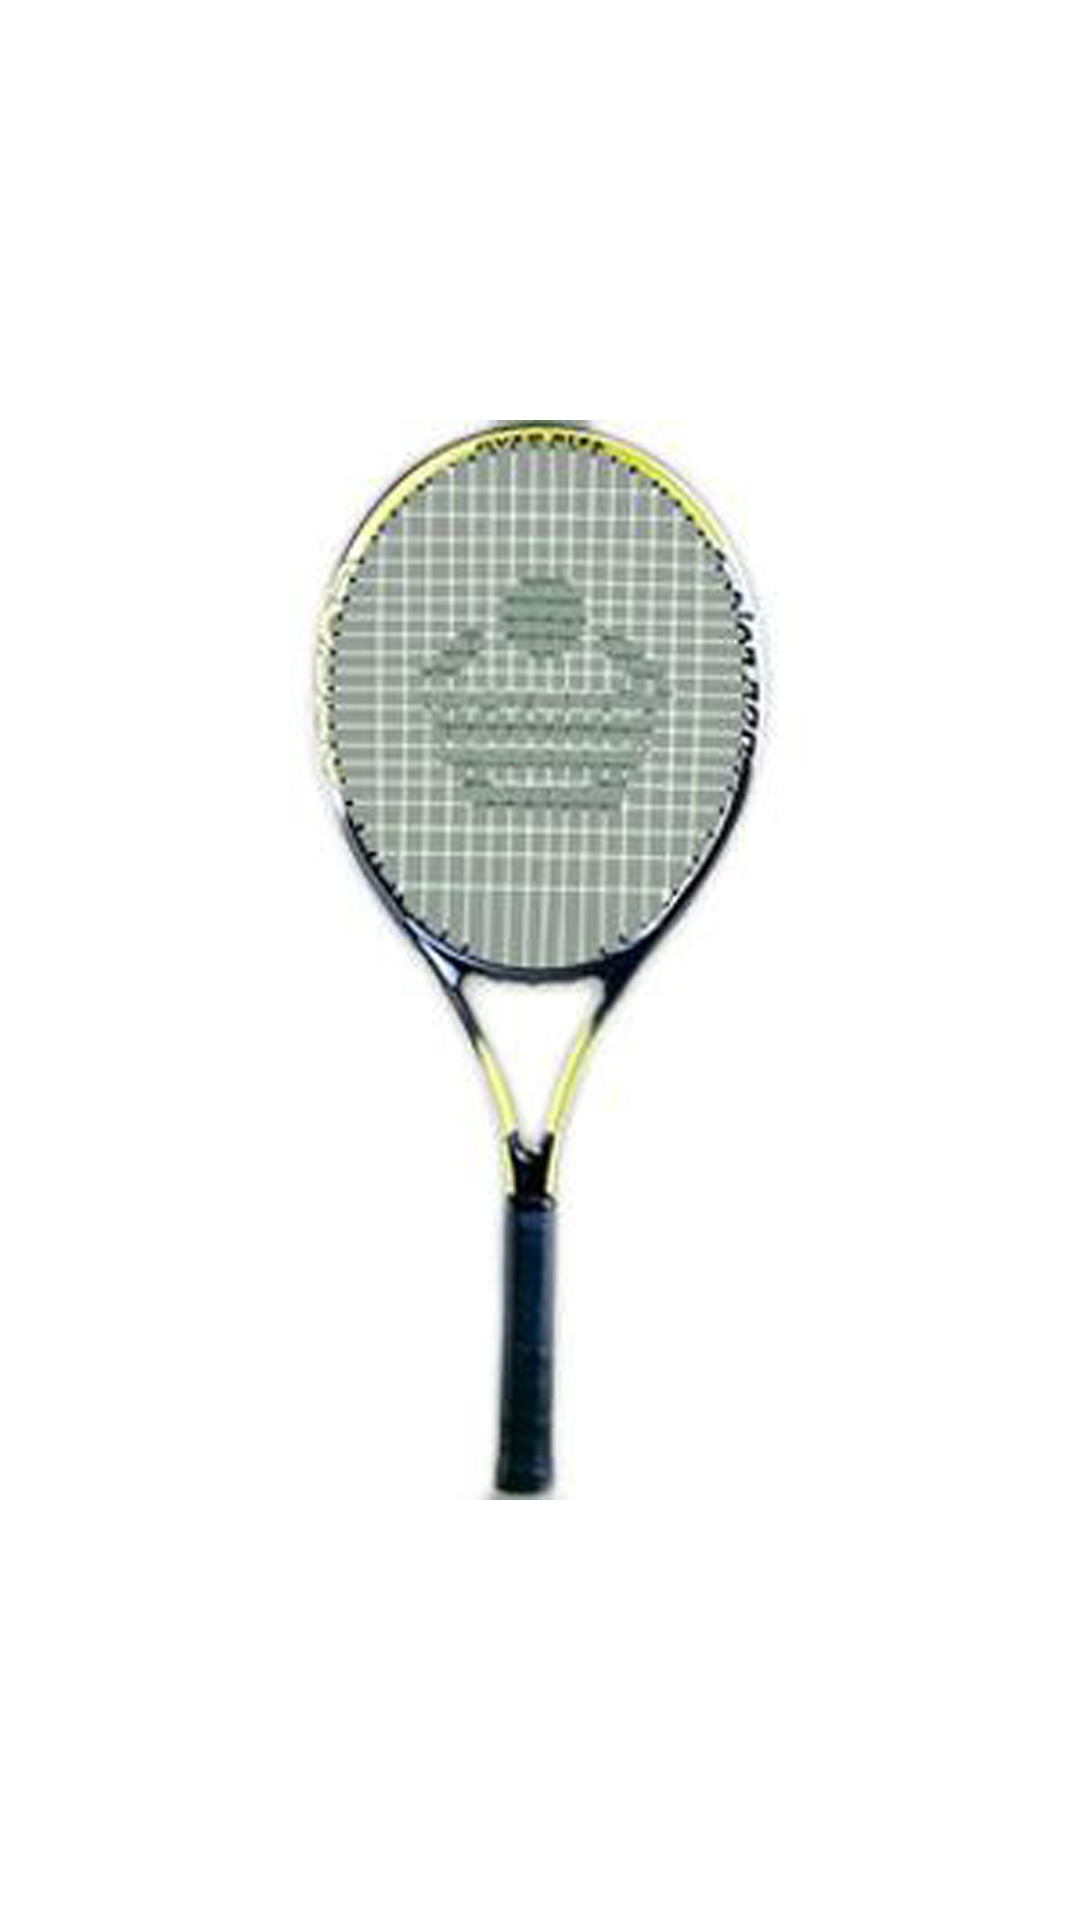 Cosco Tennis Racket